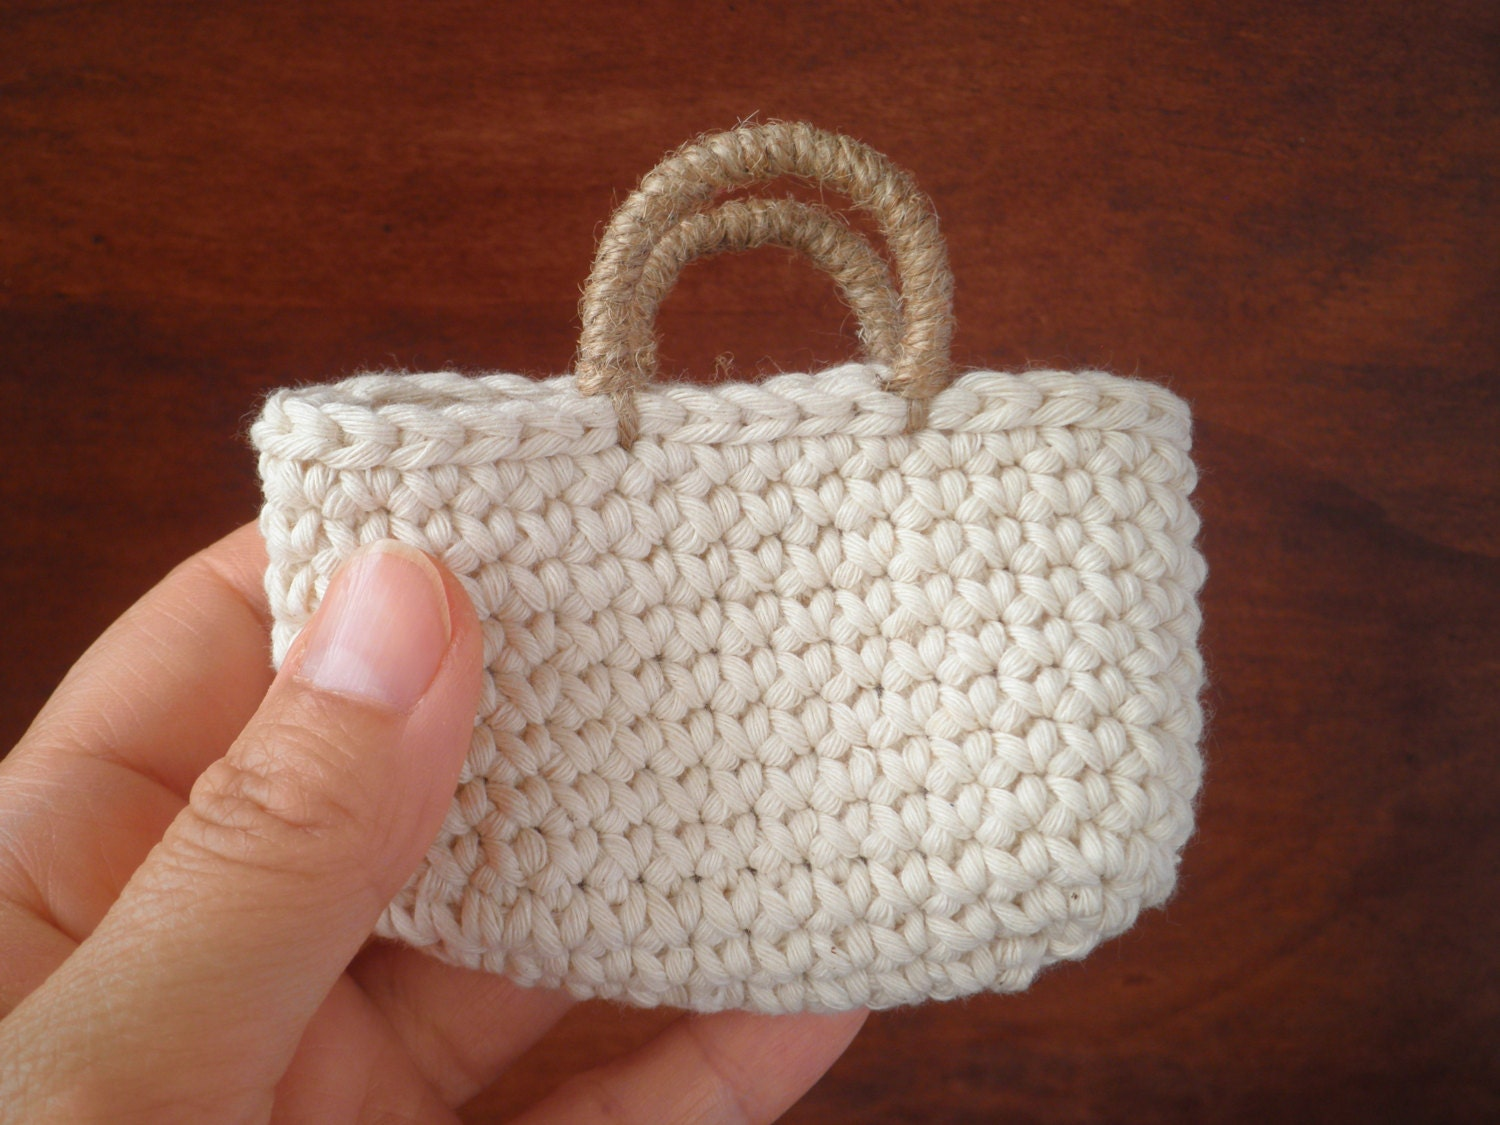 Free Crochet Pattern For Small Tote Bag : FREE SHIPPING Small Tote Bag Crochet Bag Mini Tote Natural